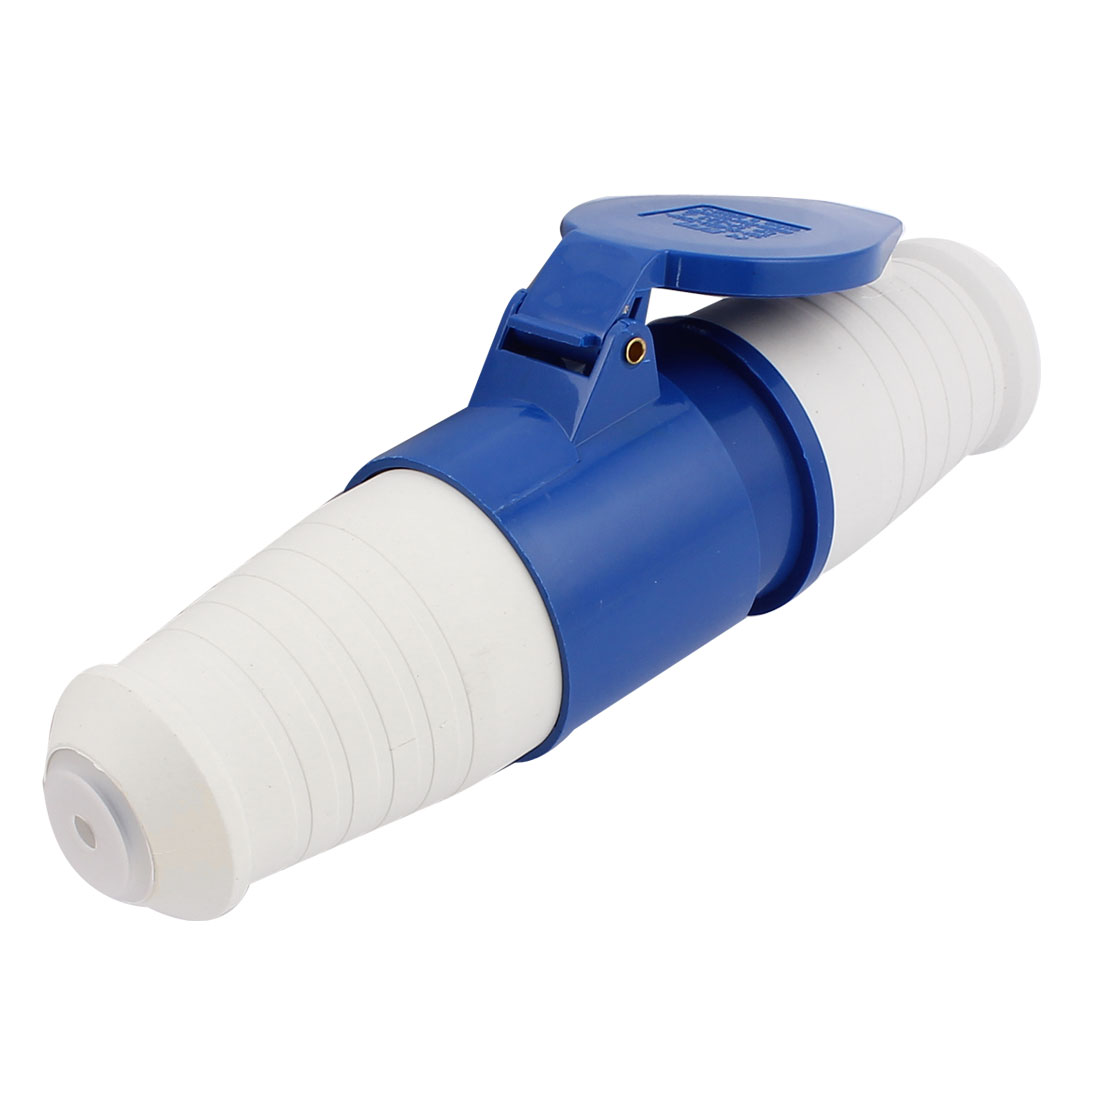 AC 220-250V 32A 2P+E 3 Terminals IP44 Waterproof Male to Female Industrial Connector Socket